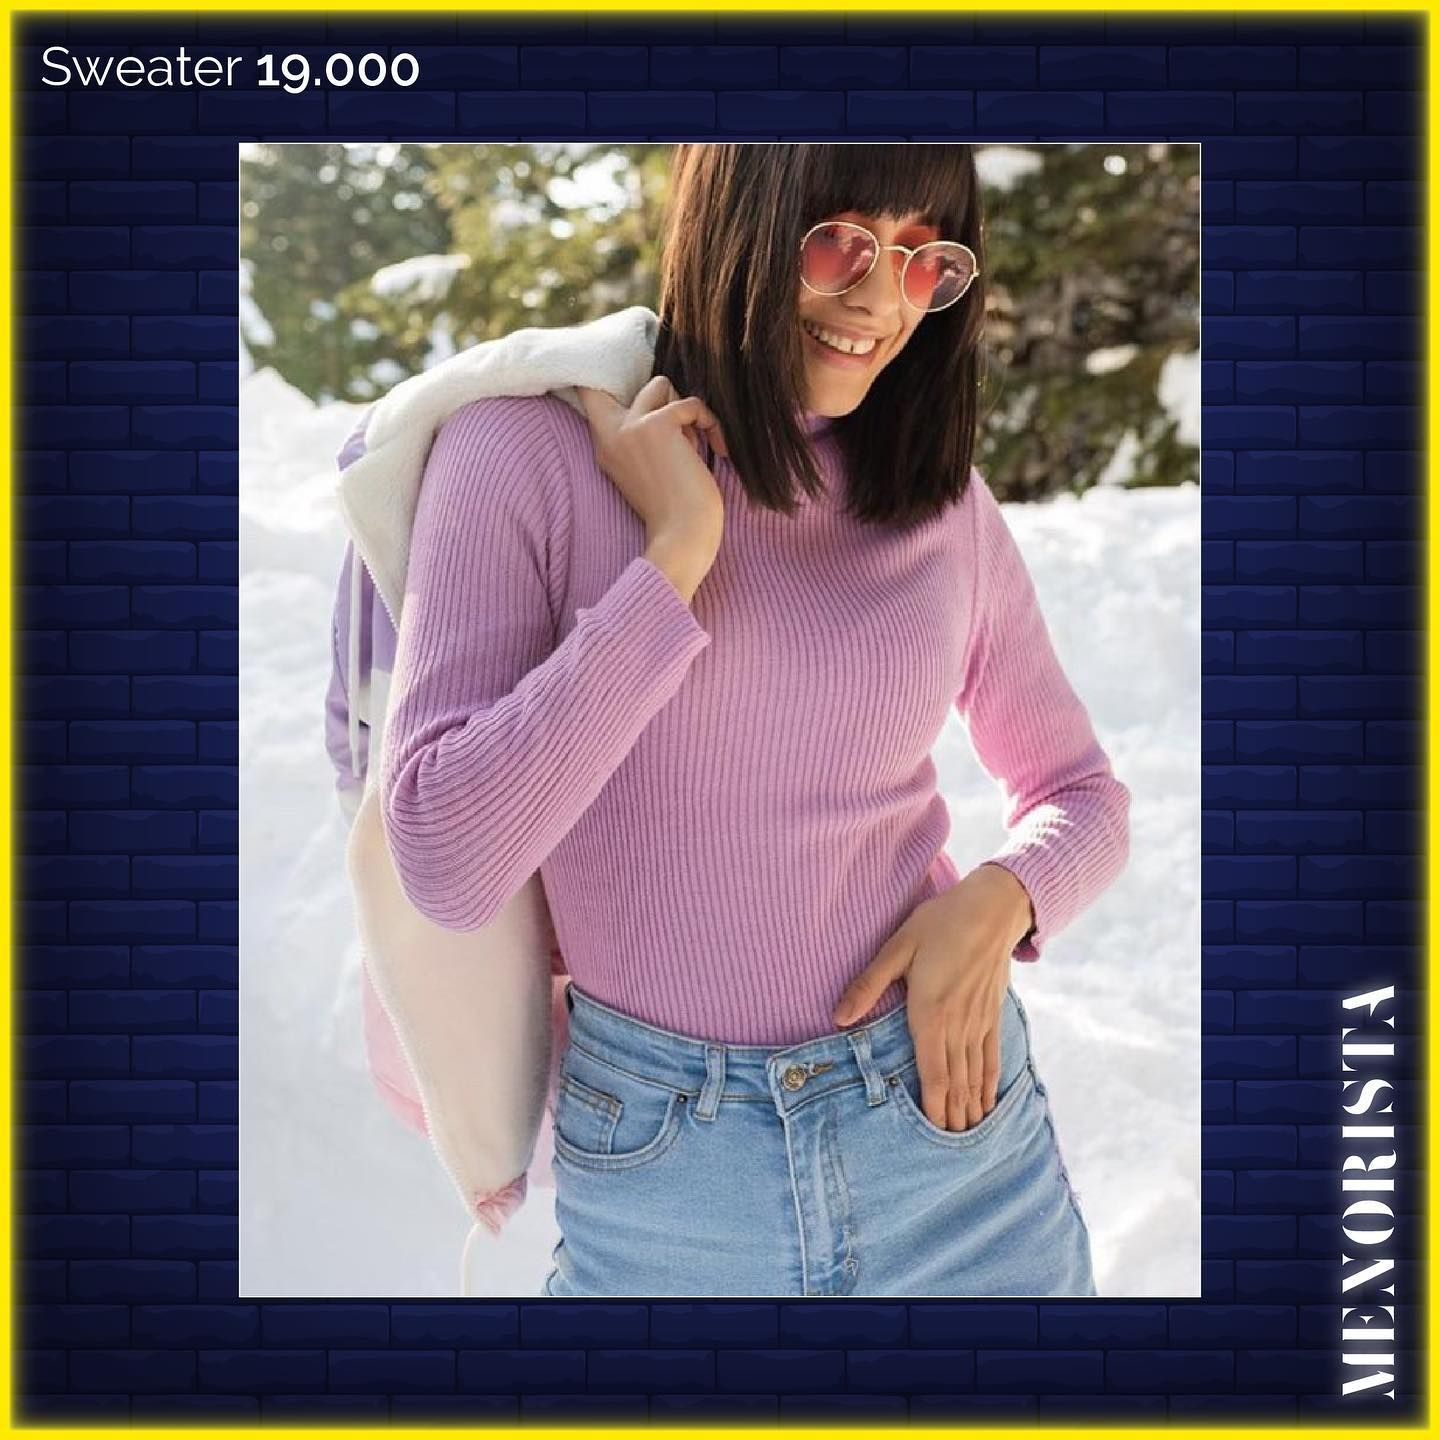 Sweater made in turkey. Available in one size.  #fashion #beauty #shopping #instastyle #beirut  #ootd #onlineshopping #onlineshoppinglebanon